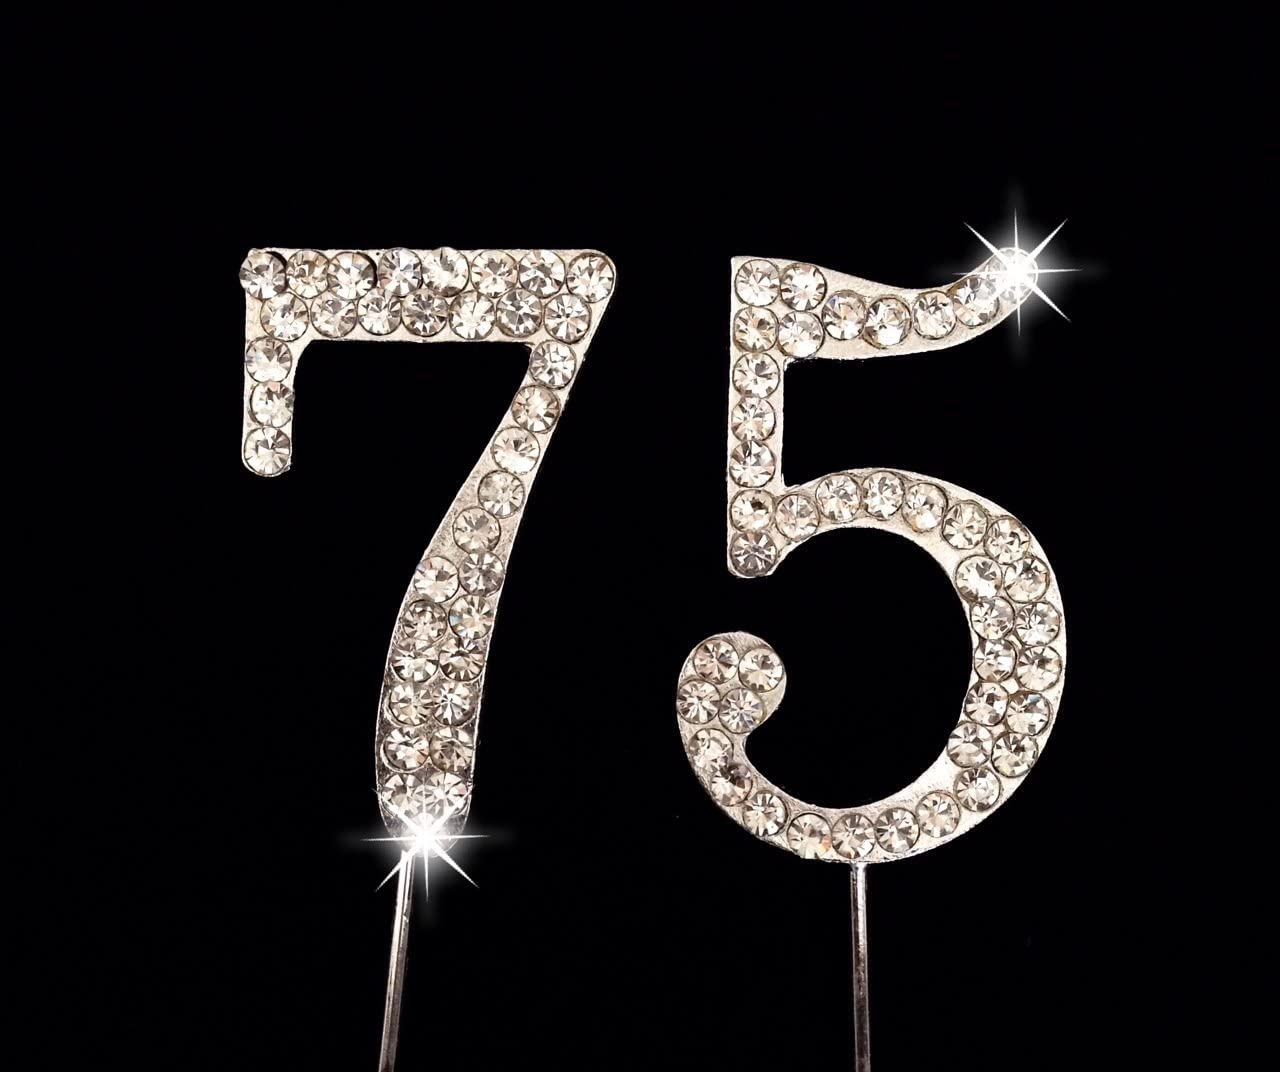 Wedding Anniversary Number Cake Topper with Sparkling Rhinestone Crystals 20th Birthday 1.75 CC-NRCT-1 20th Year Cake Topper 1.75